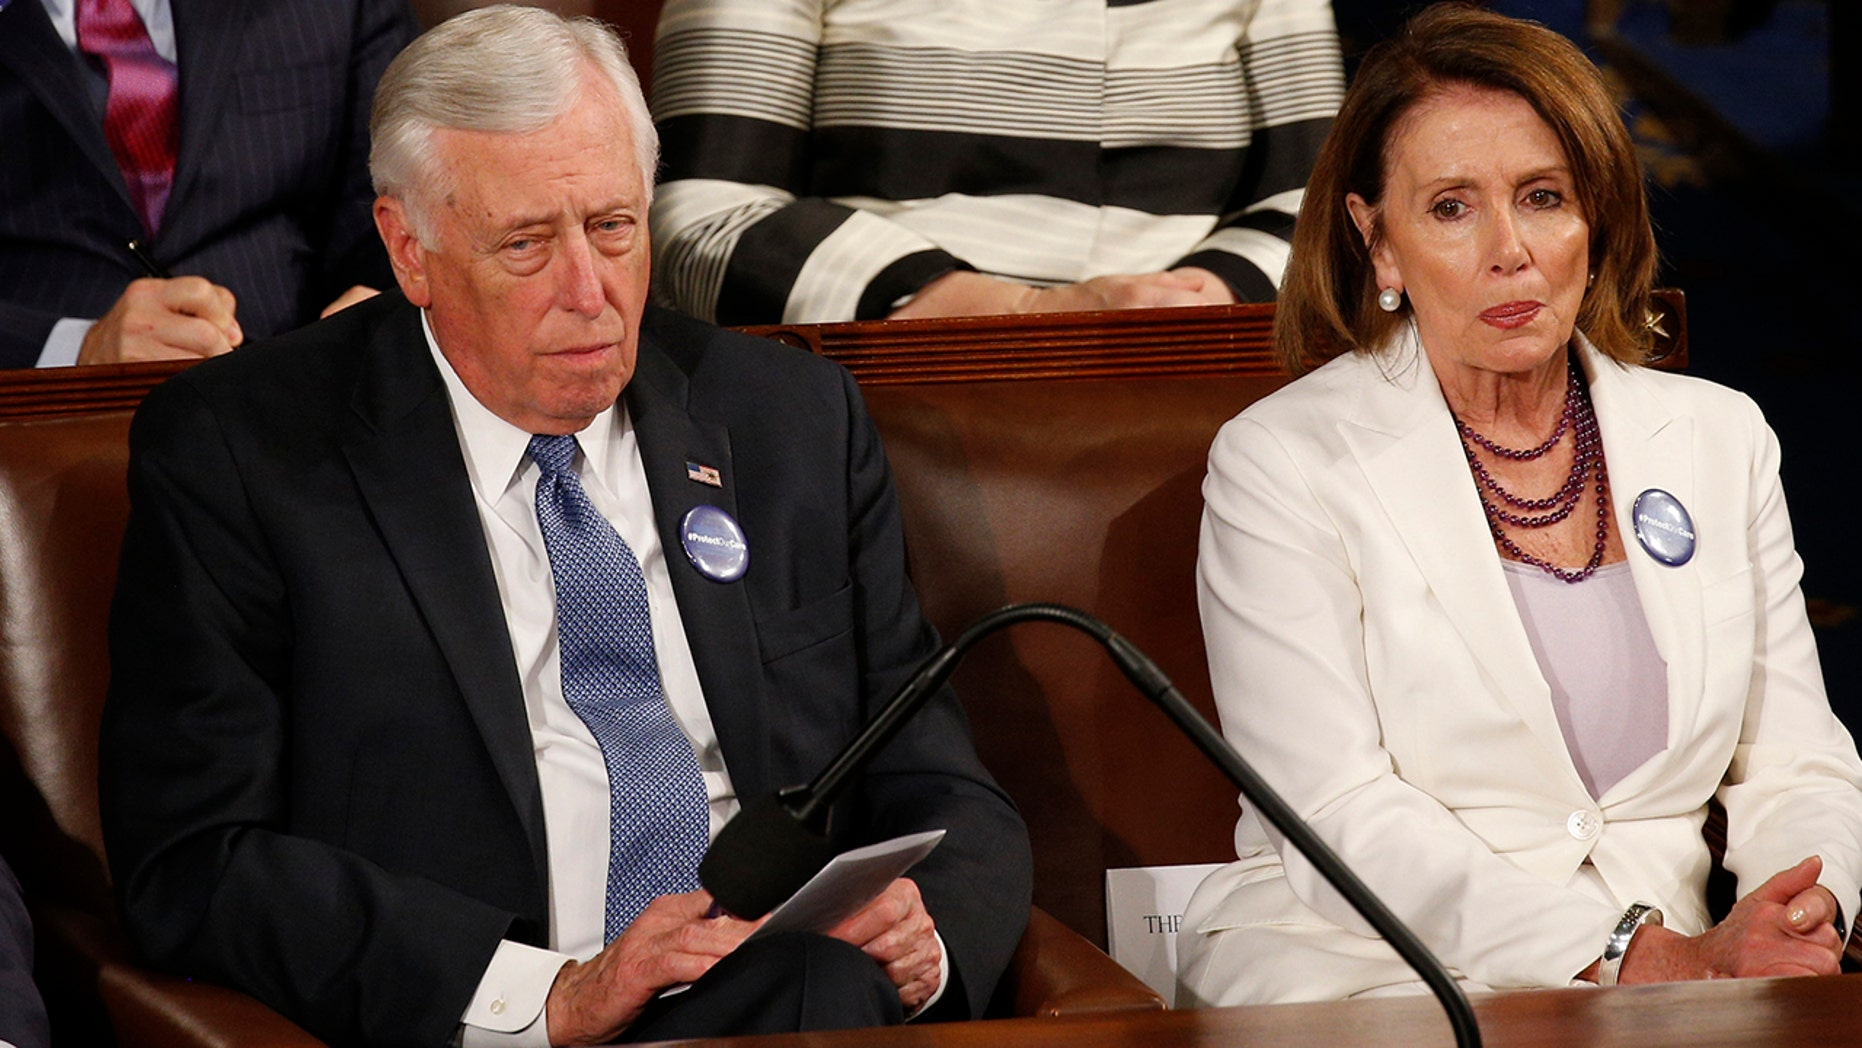 House Minority Leader Nancy Pelosi came to the defense of House Minority Whip Steny Hoyer on Thursday after an audio recording surfaced of him pressuring a progressive candidate to drop out of a race.